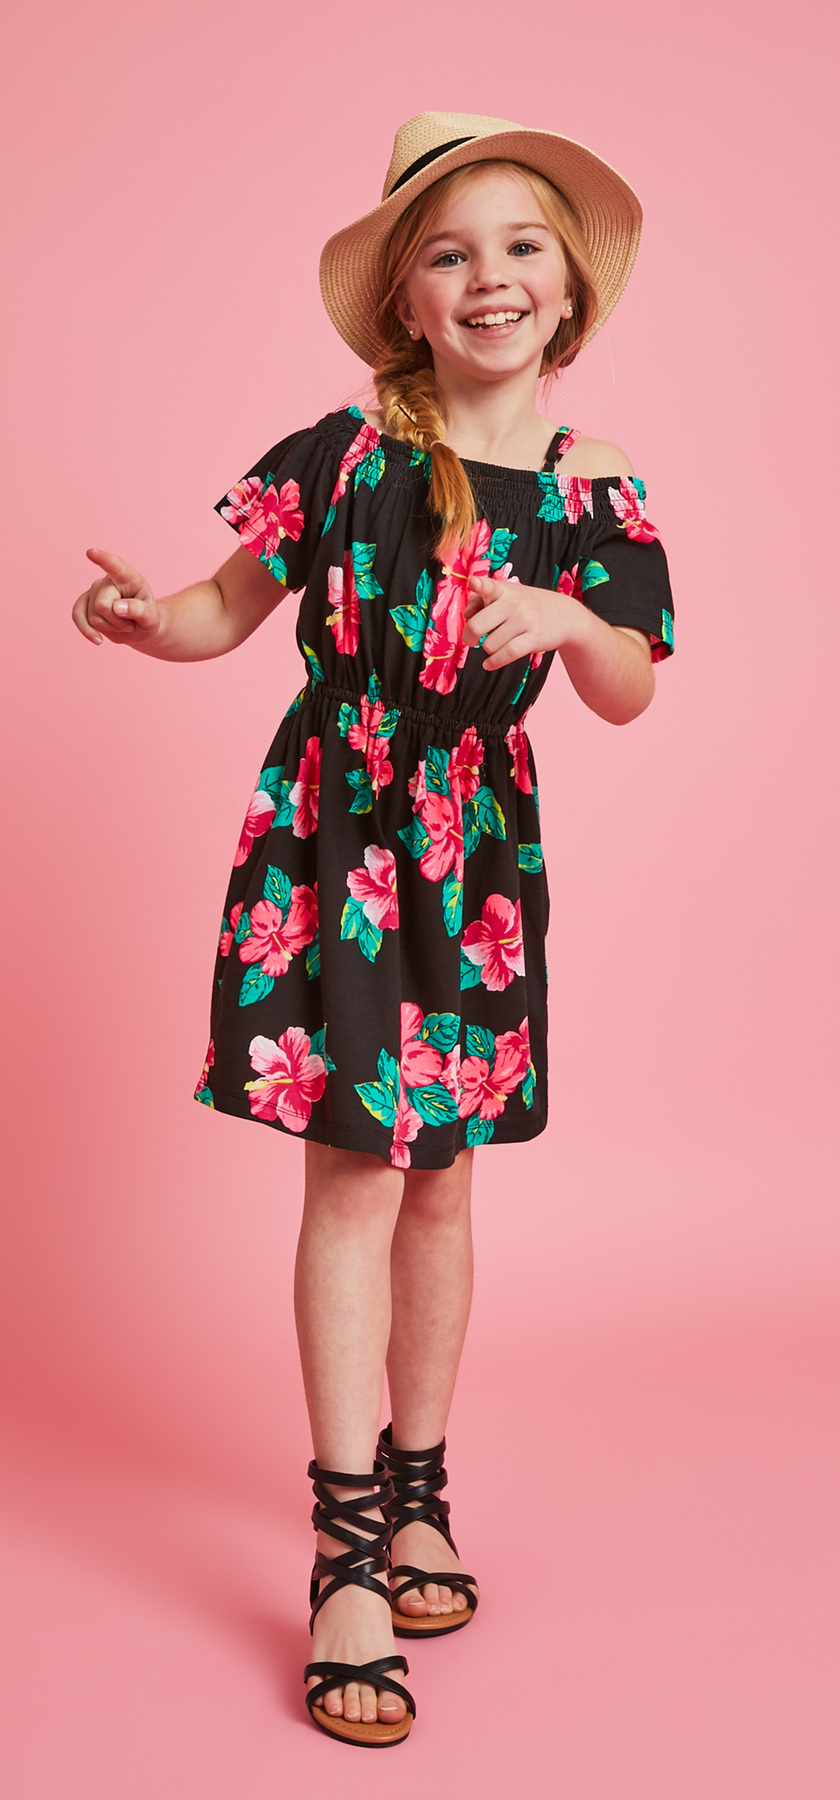 Cold shoulder hibiscus print dress hat outfit fabkids fabkidss standard terms of service regarding shipping returns and exchanges apply terms subject to change at any time without notice izmirmasajfo